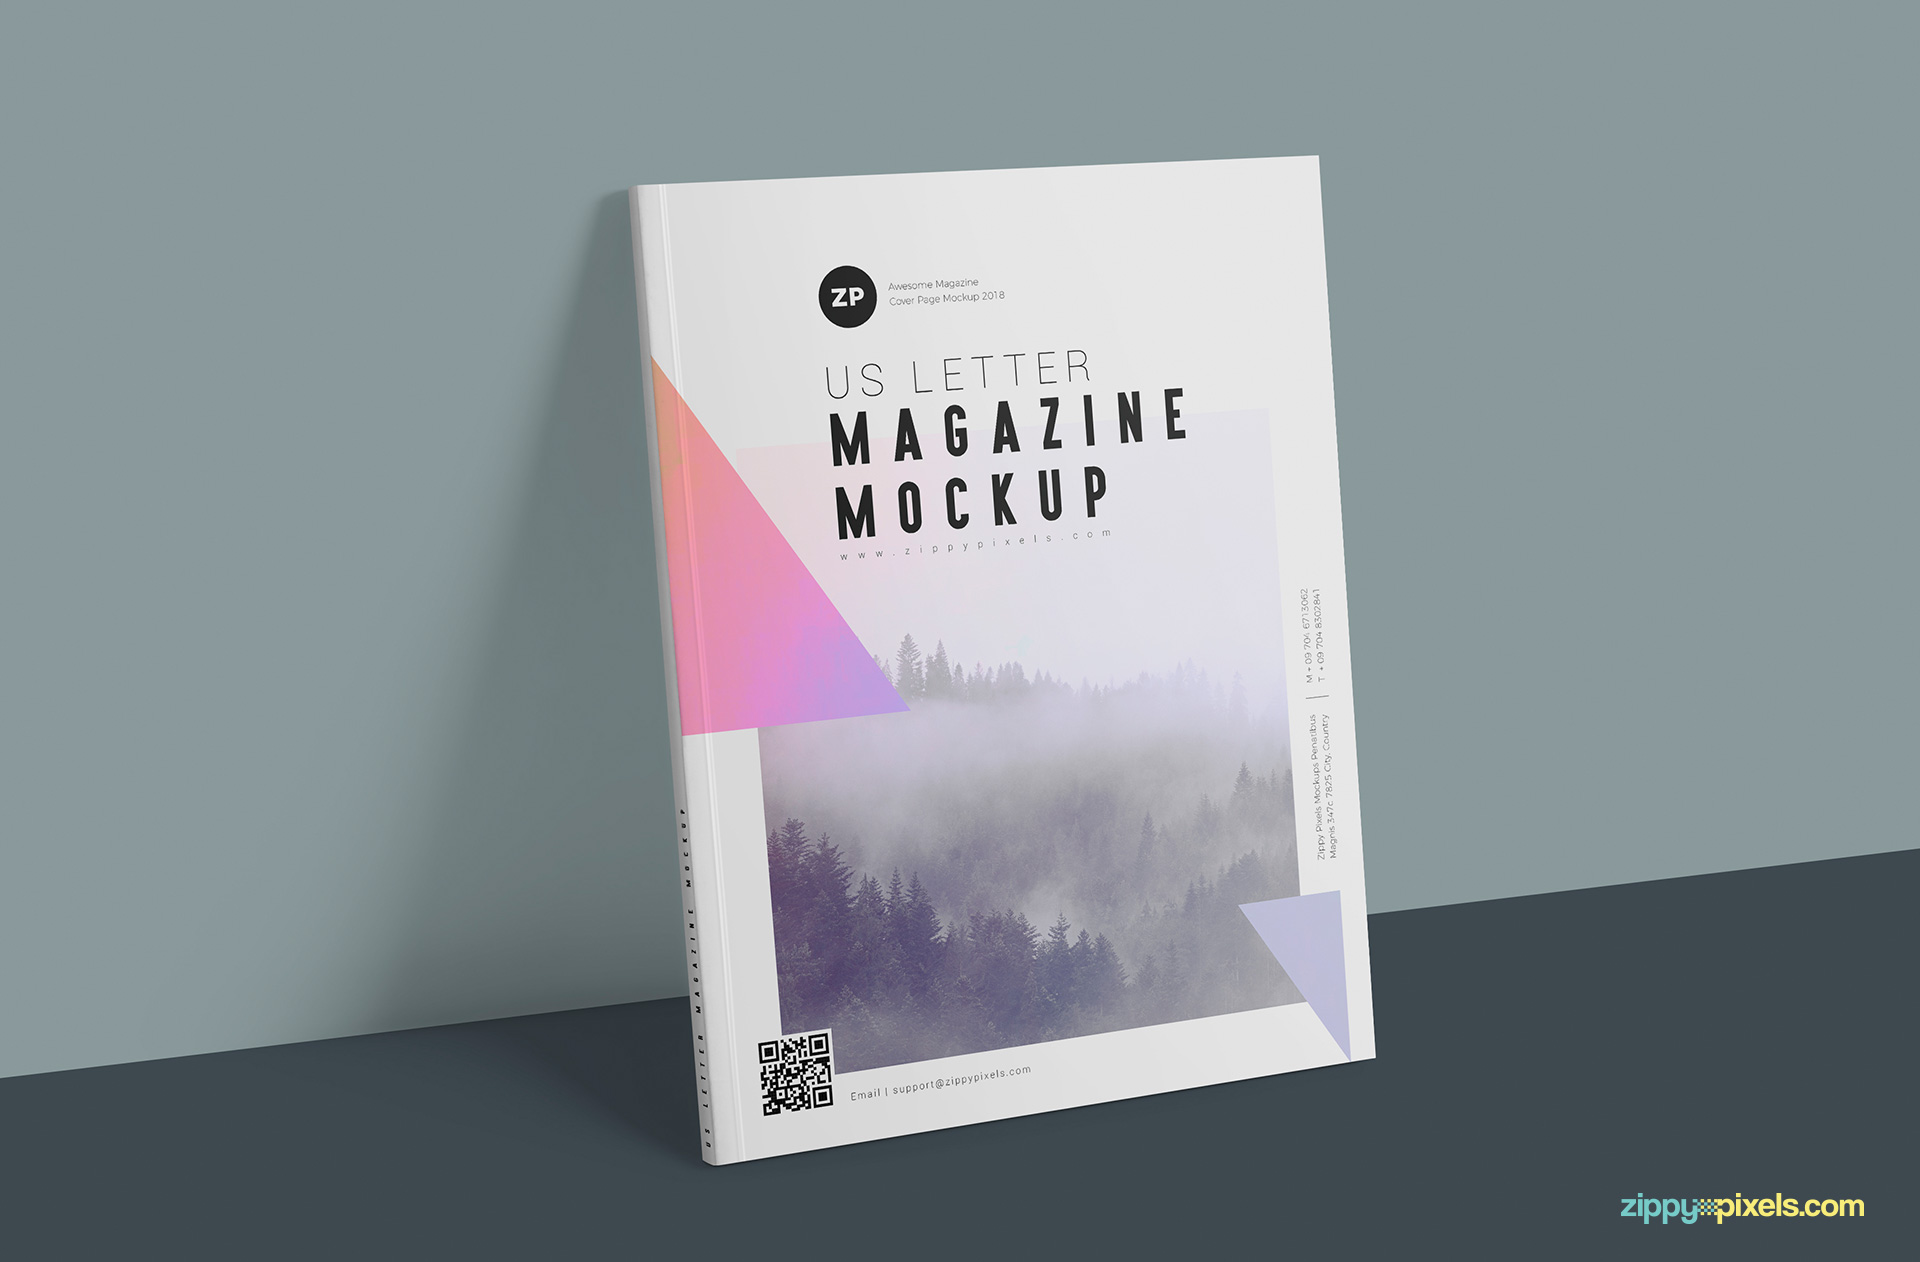 You can edit every element of this magazine mockup available in US letter size.